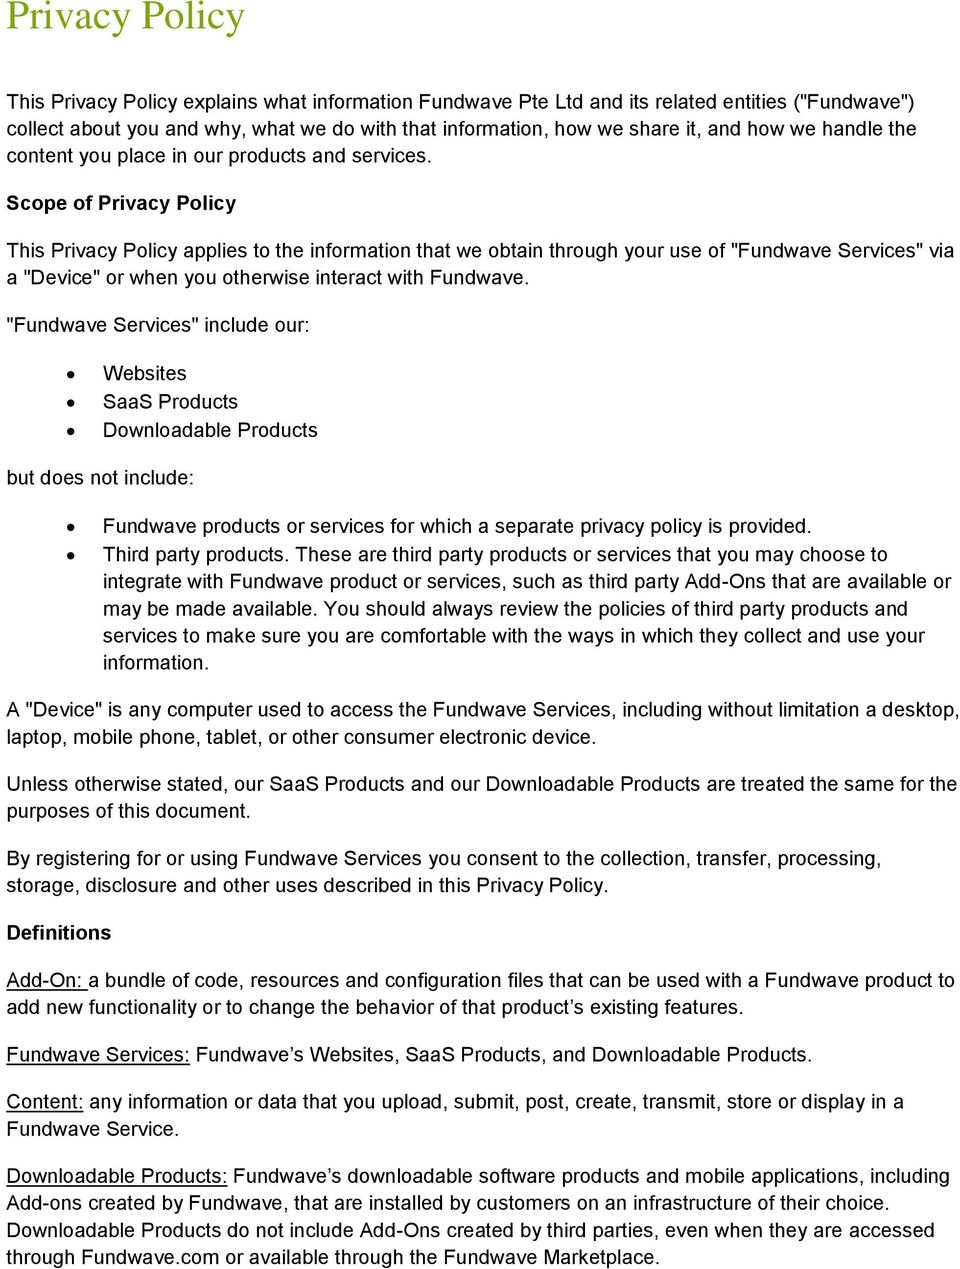 "Scope of Privacy Policy This Privacy Policy applies to the information that we obtain through your use of ""Fundwave Services"" via a ""Device"" or when you otherwise interact with Fundwave."